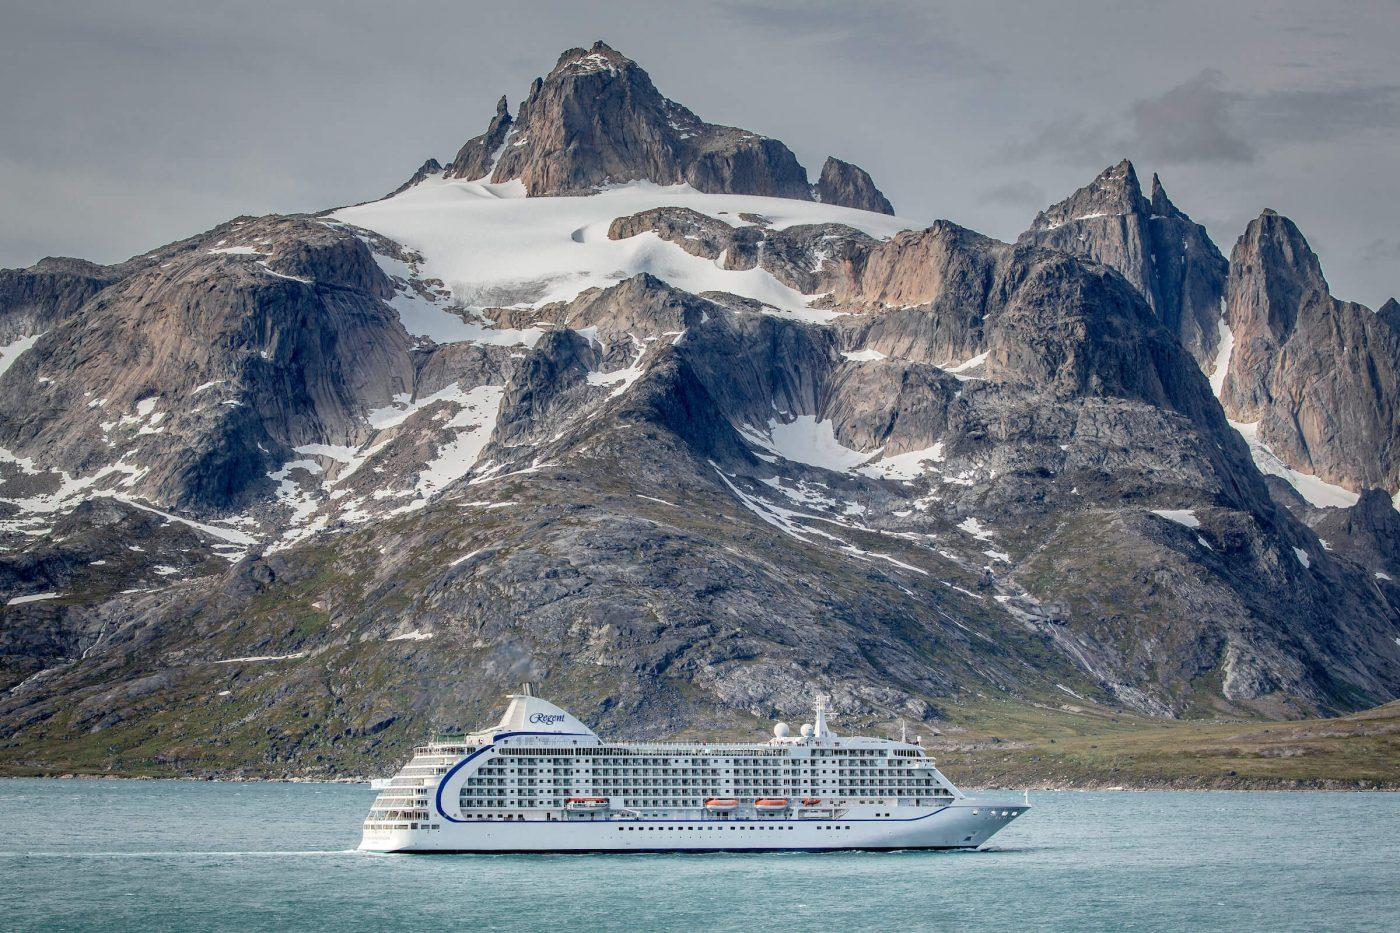 The cruise ship Sevens Seas Voyager passes underneath the mountain Qilertiki in South Greenland near Aappilattoq and Prince Christian Sound. Photo by Sevens Seas Voyager